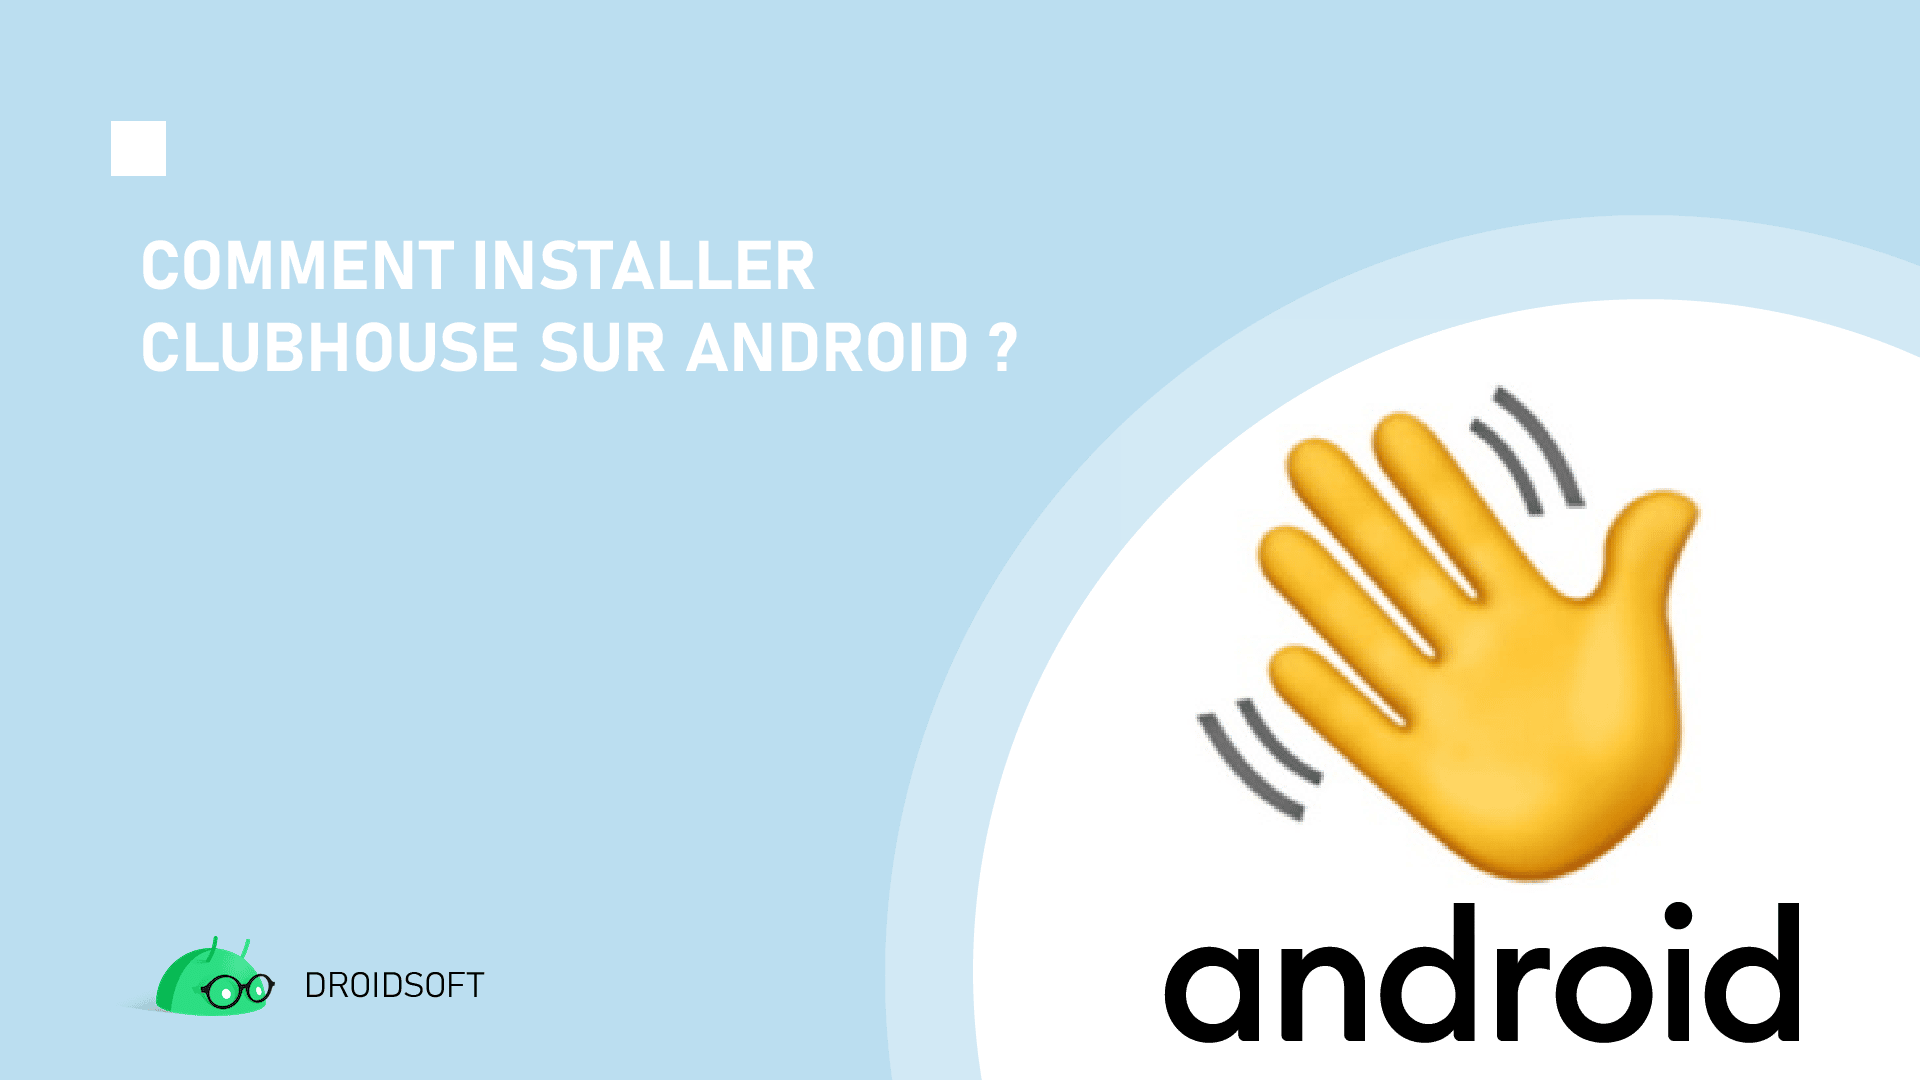 comment installer clubhouse sur android?